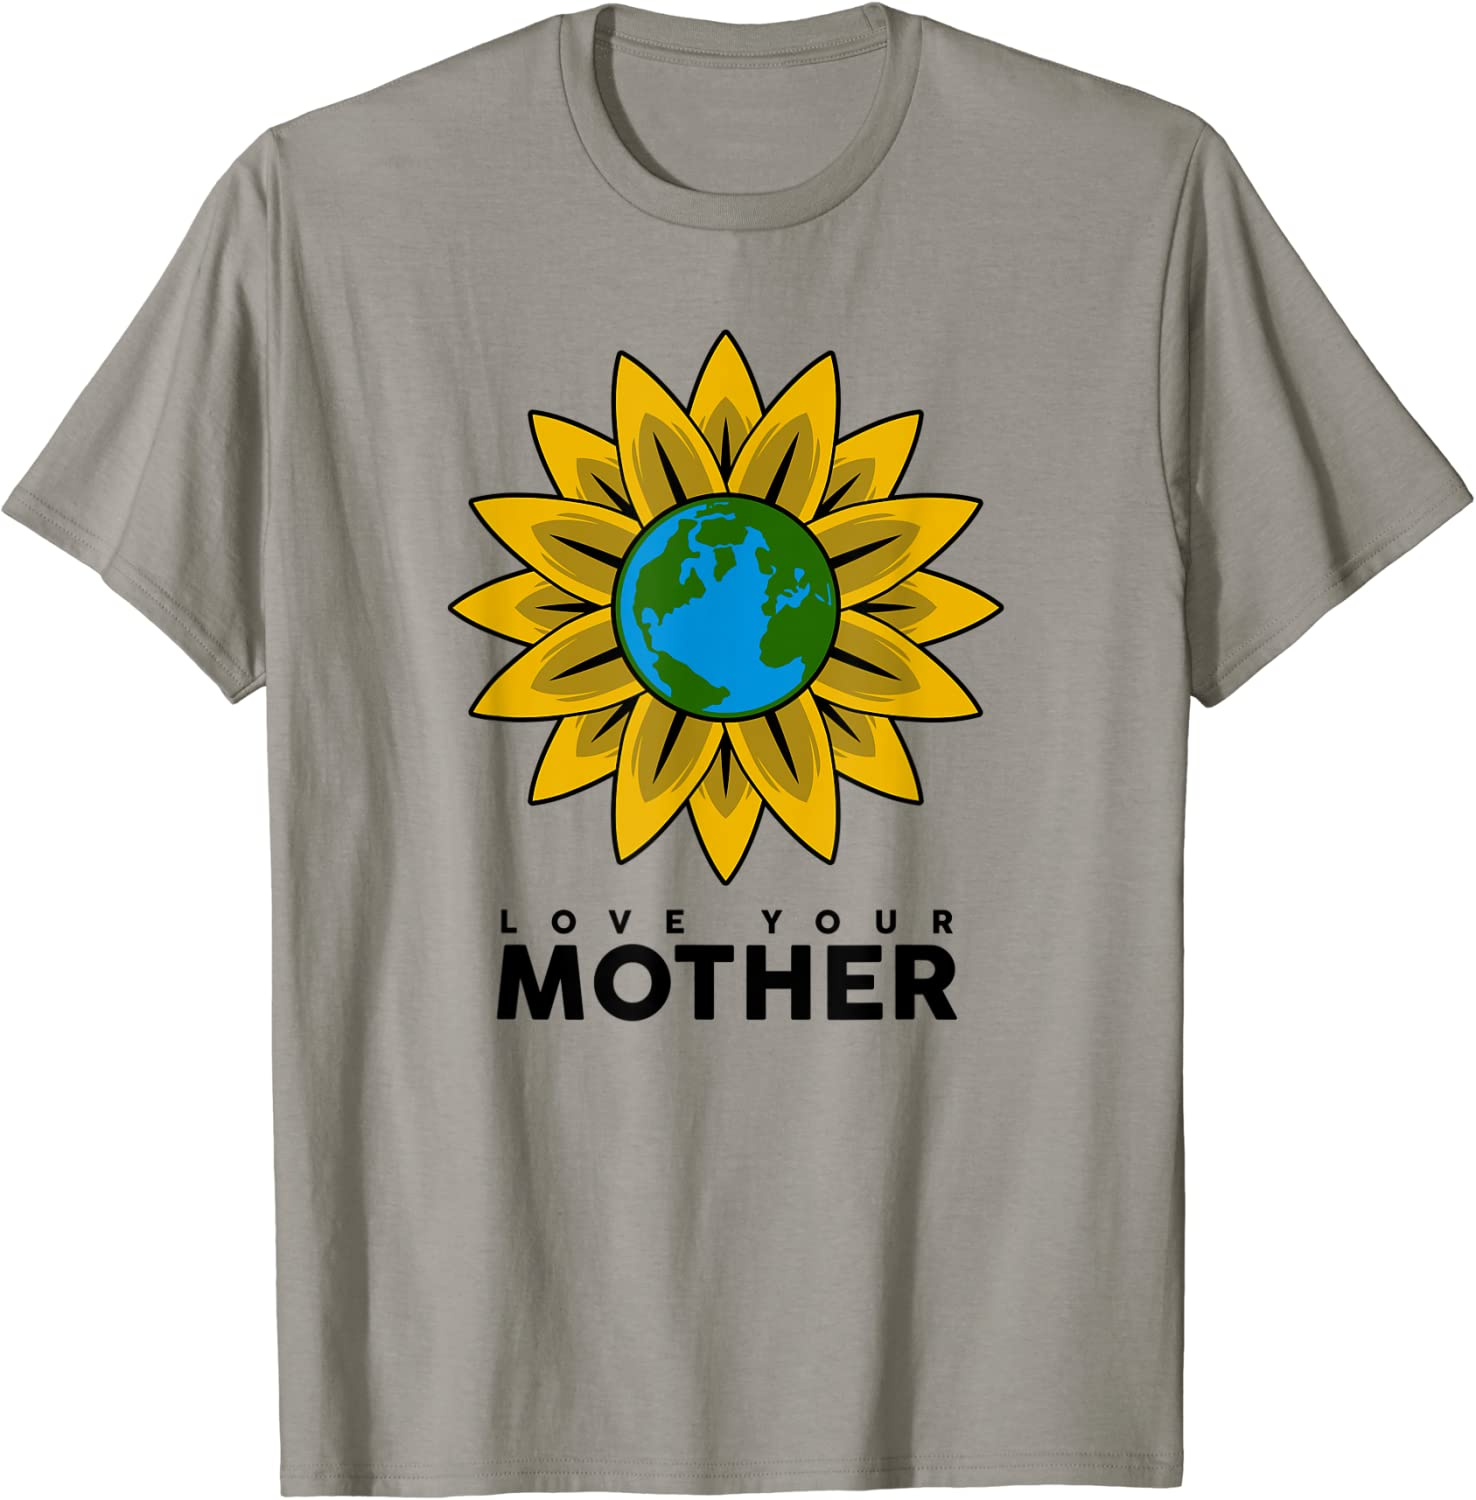 LOVE YOUR MOTHER EARTH Shirt | Save The Planet T-sShirt Gift